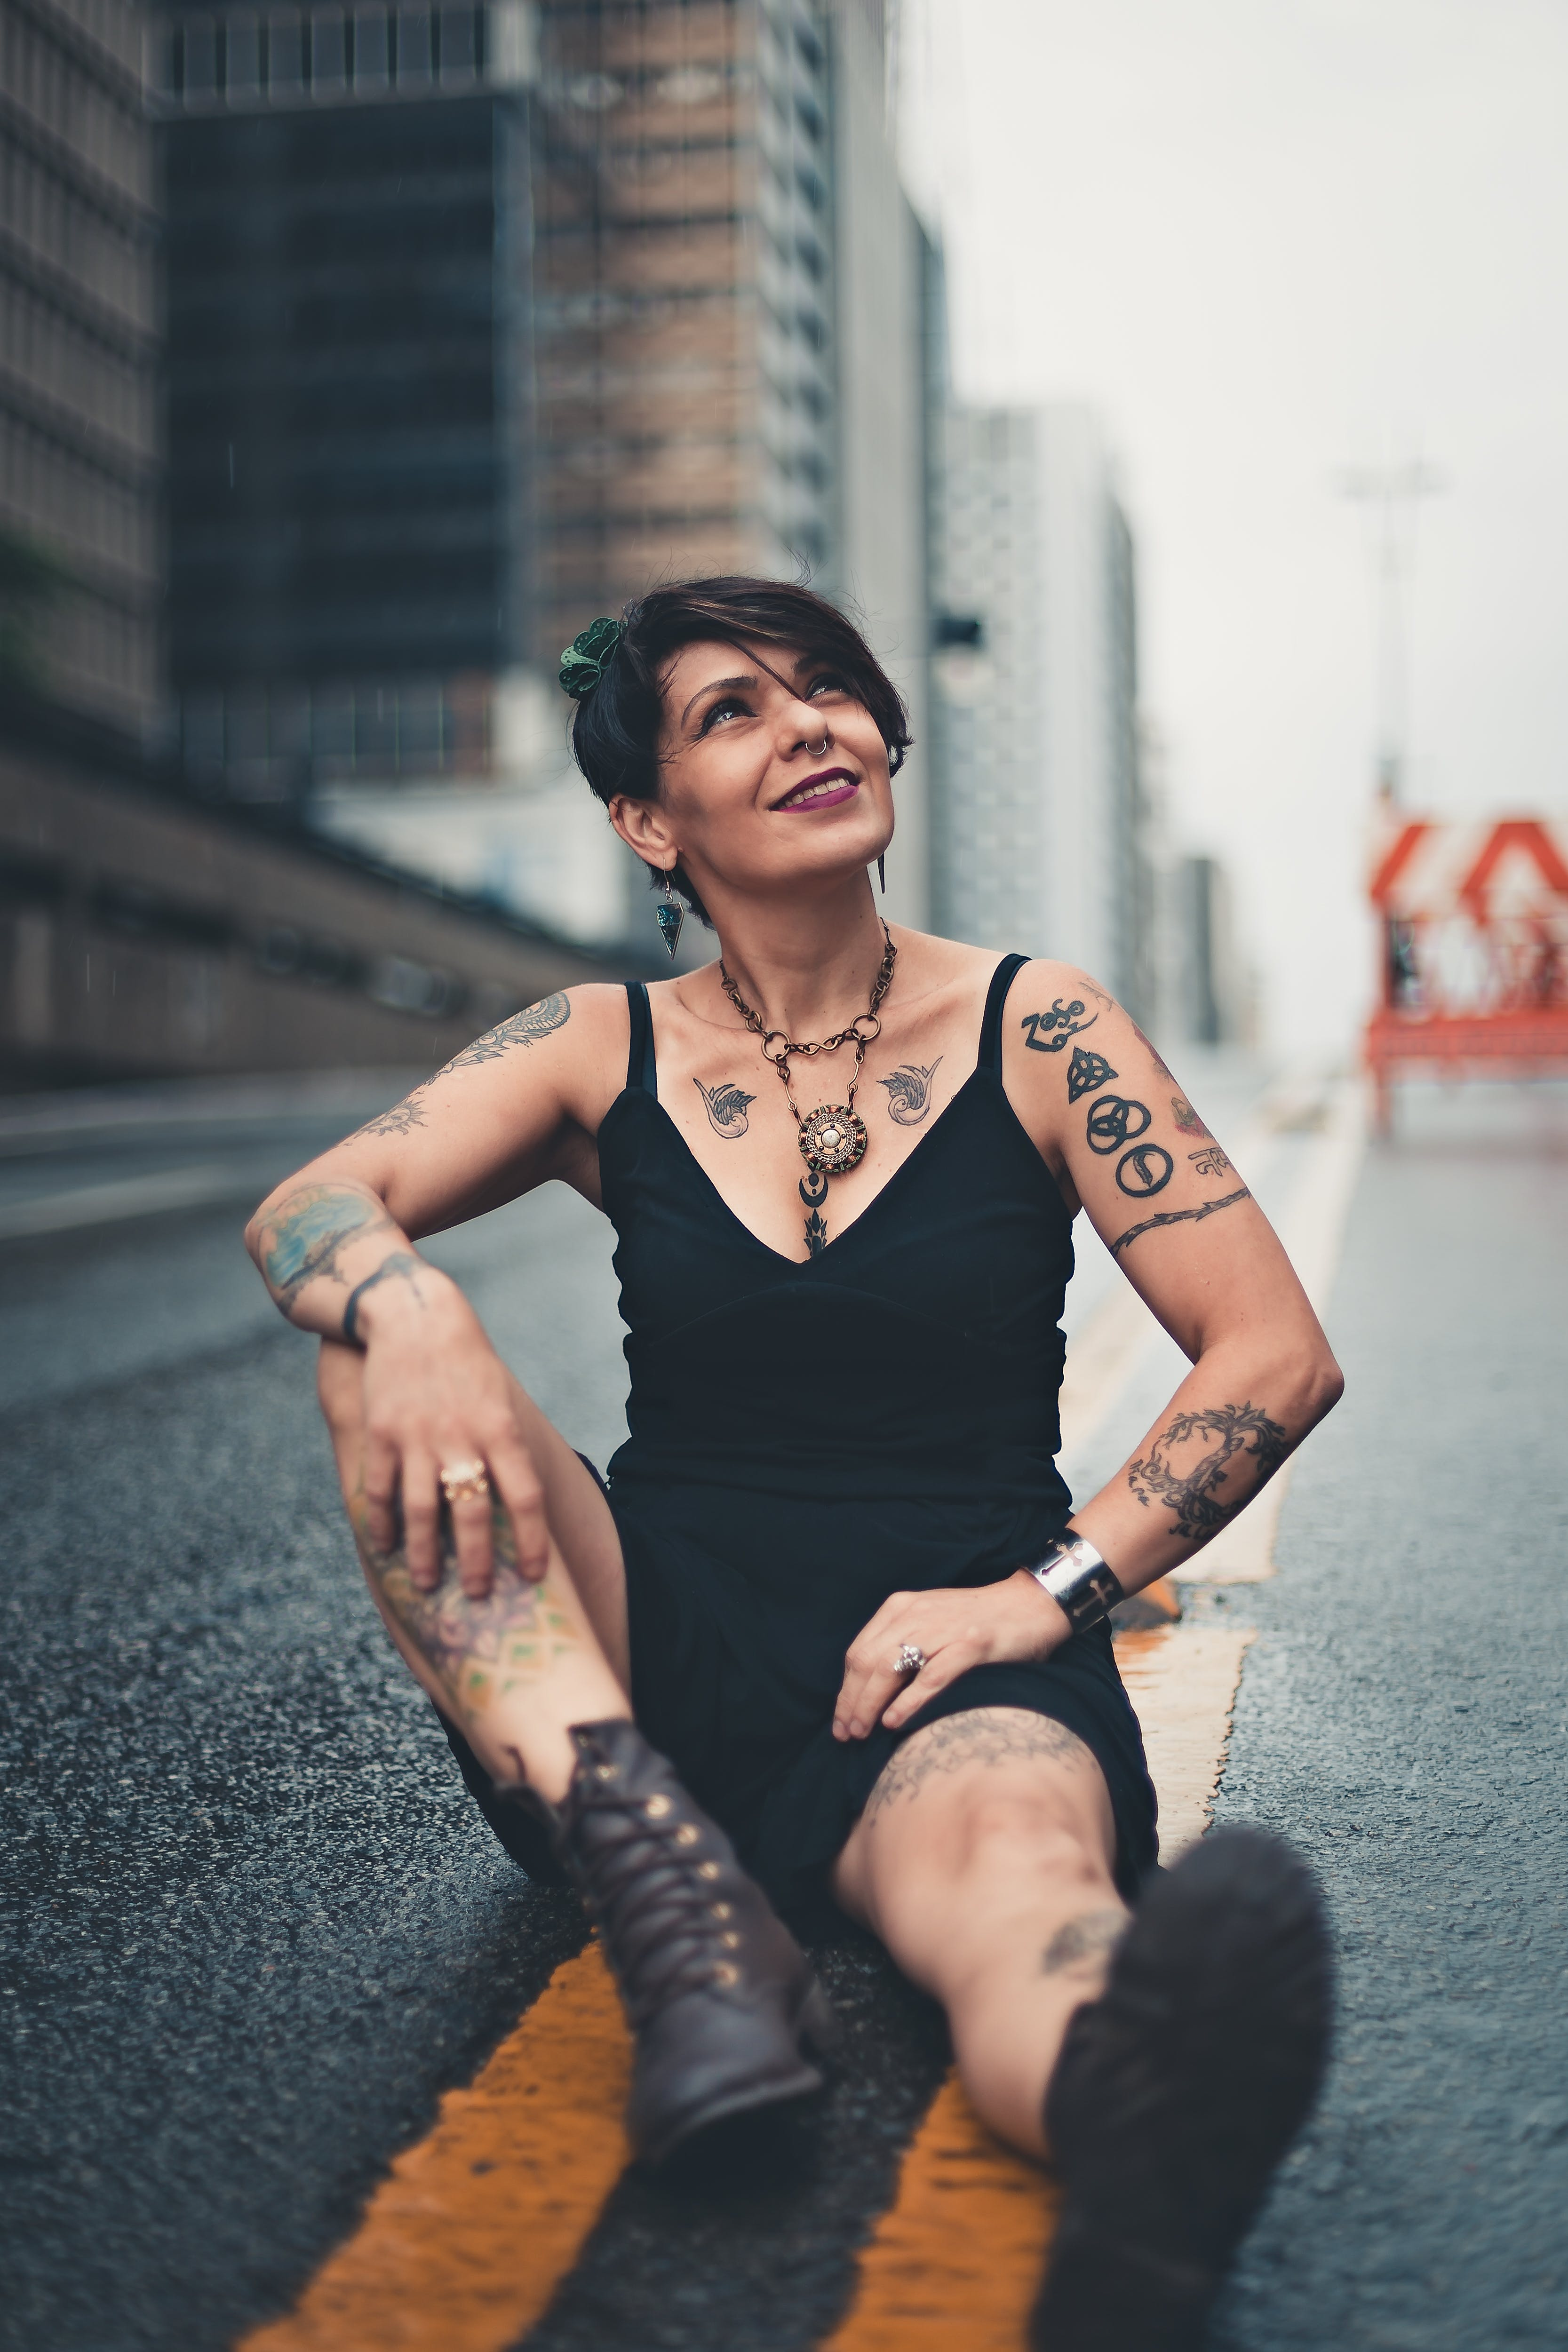 Photo of Smiling Woman Looking up Sitting on Concrete Road